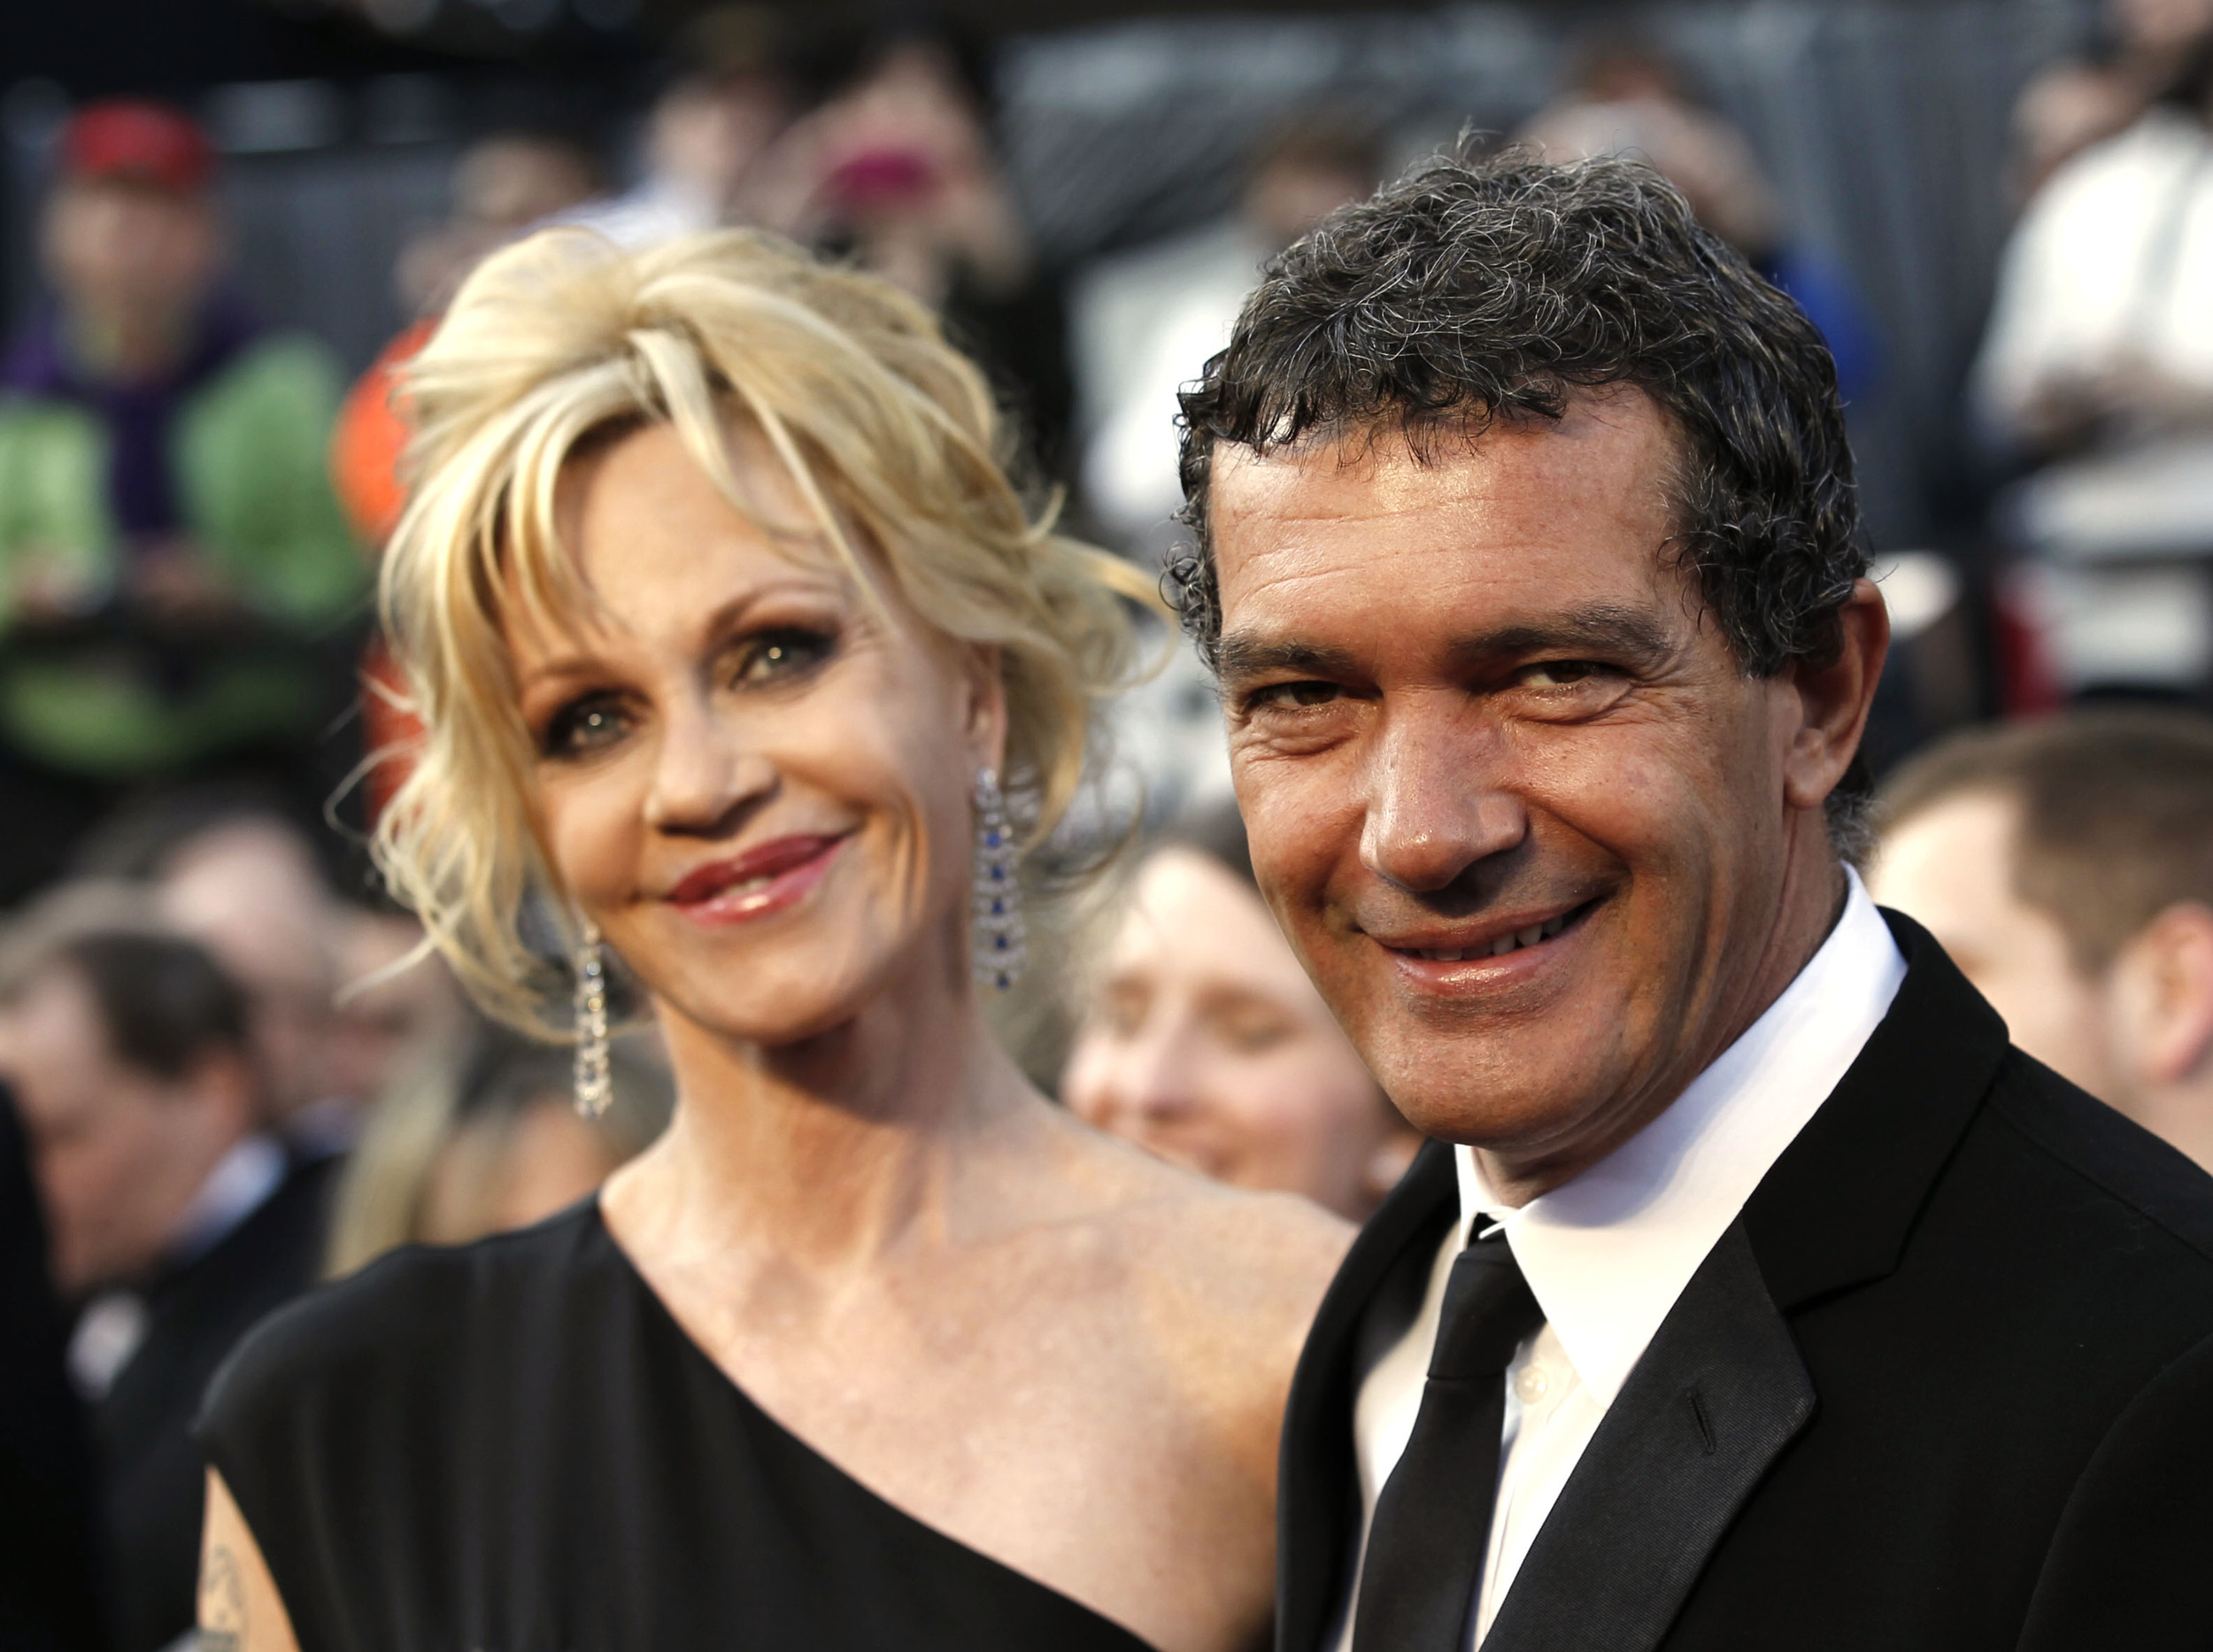 Antonio Banderas couple